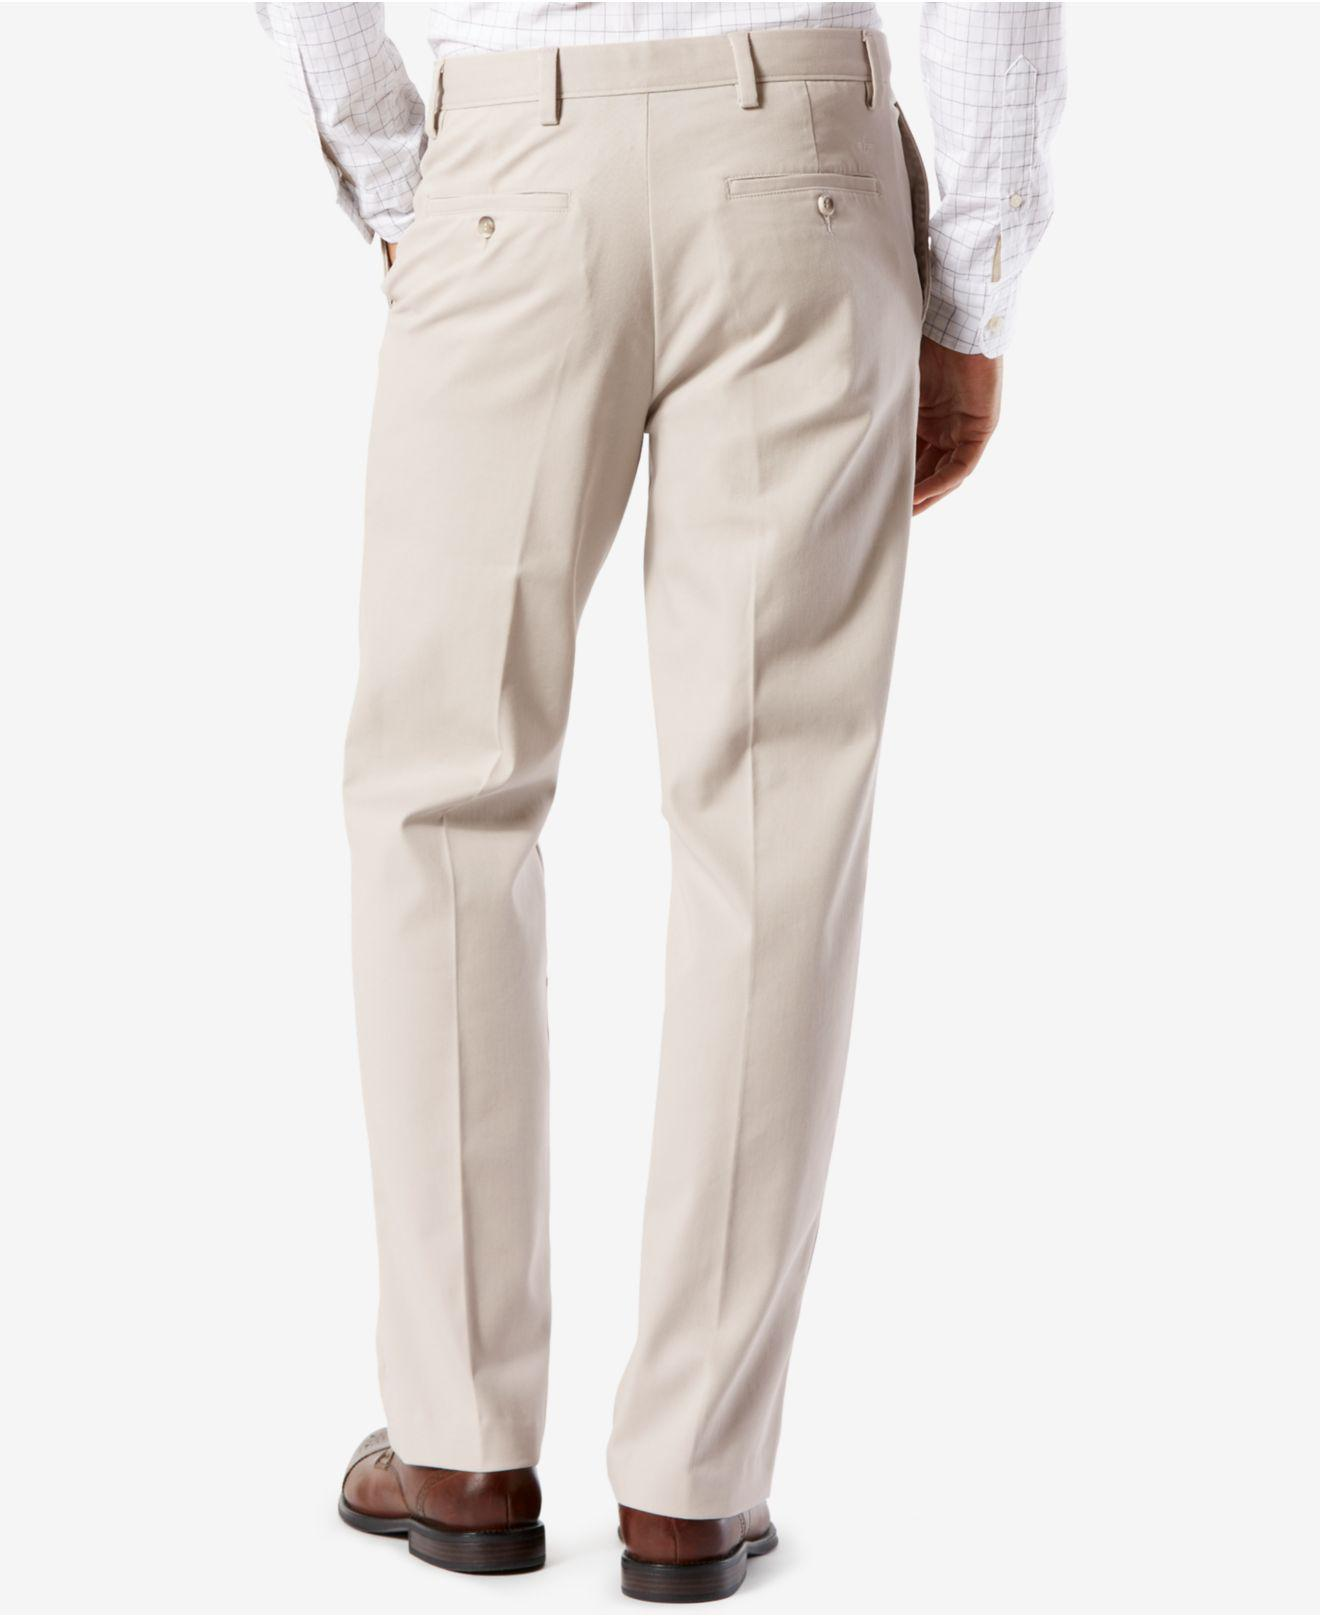 ffbb54f9a6 Lyst - Dockers Easy Classic Fit Khaki Stretch Pants in Natural for Men